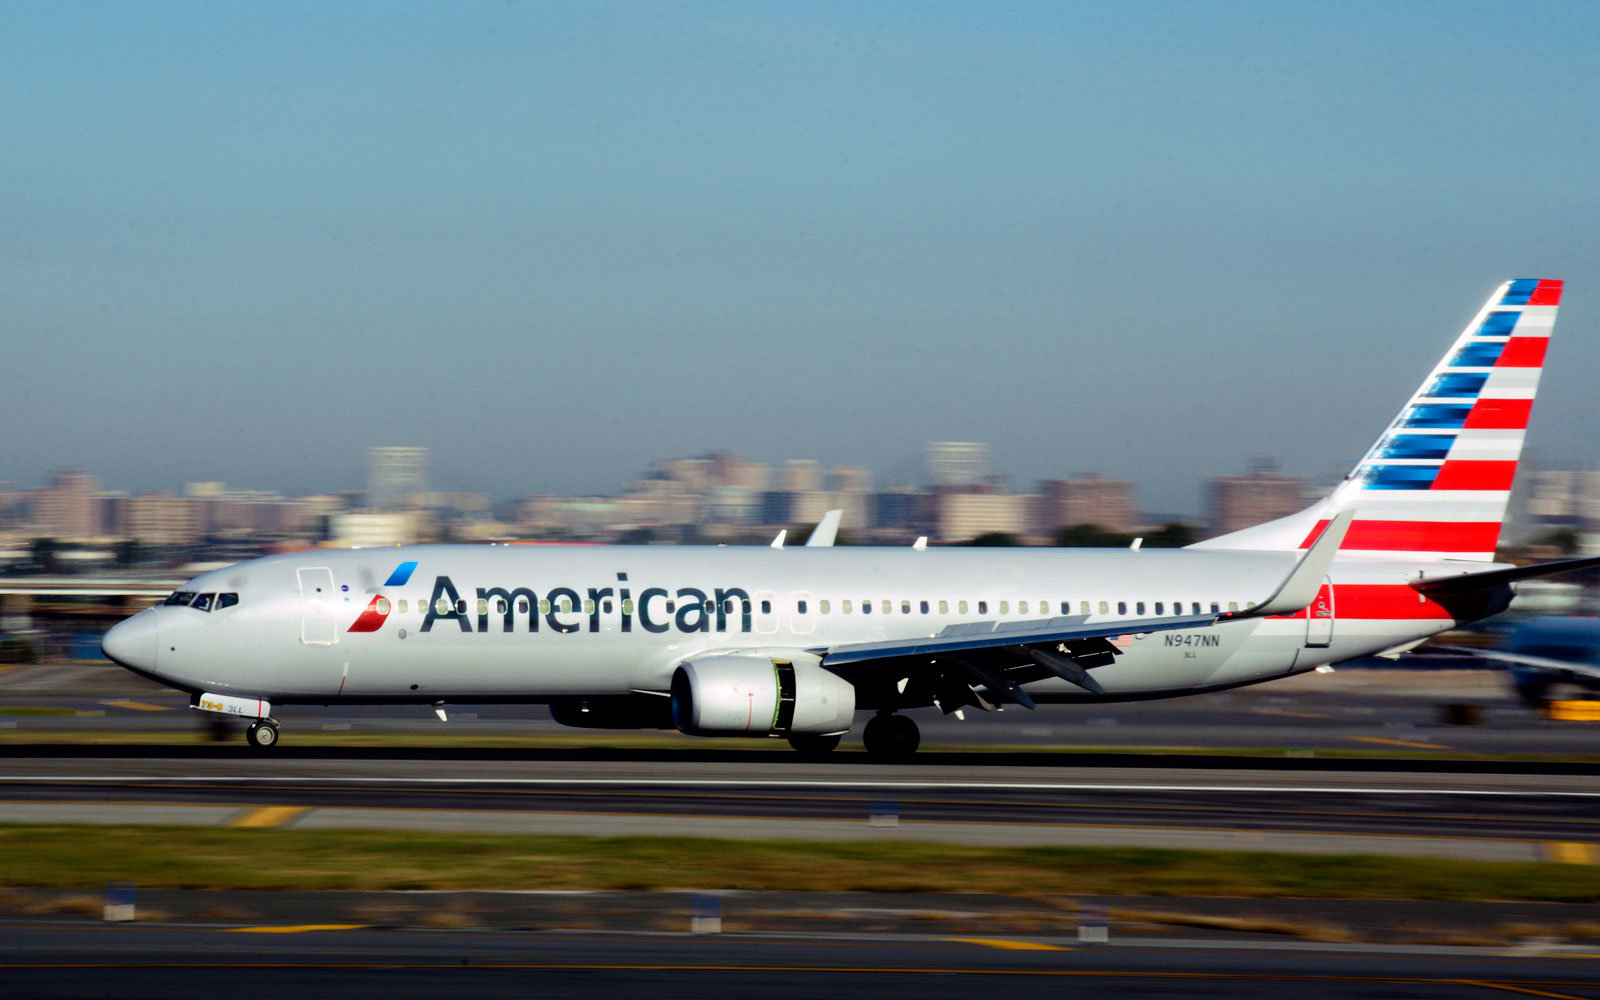 Hundreds of upcoming American Airlines flights don't have pilots, union says